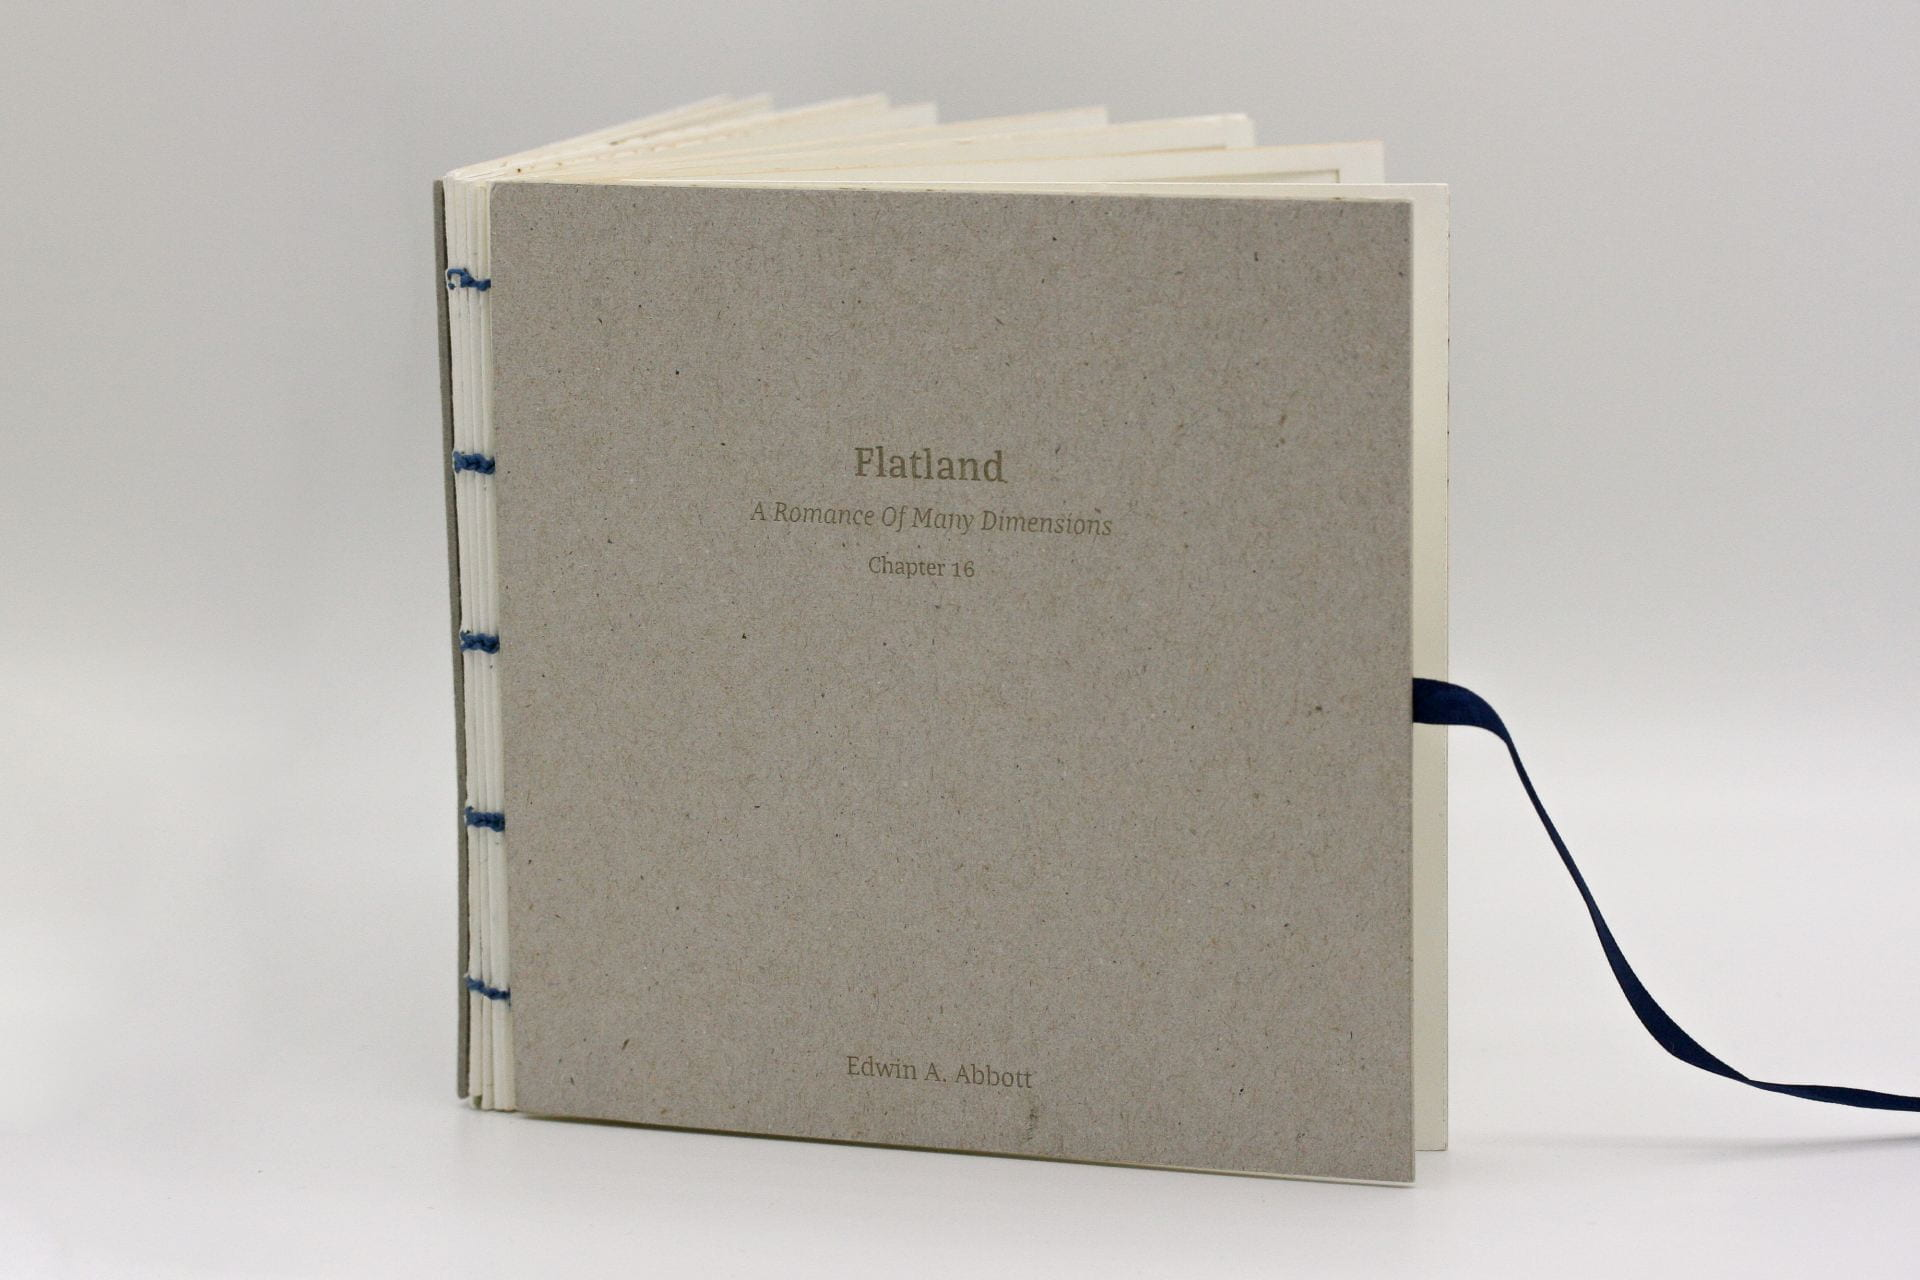 Front cover of book titled 'Flatland'.